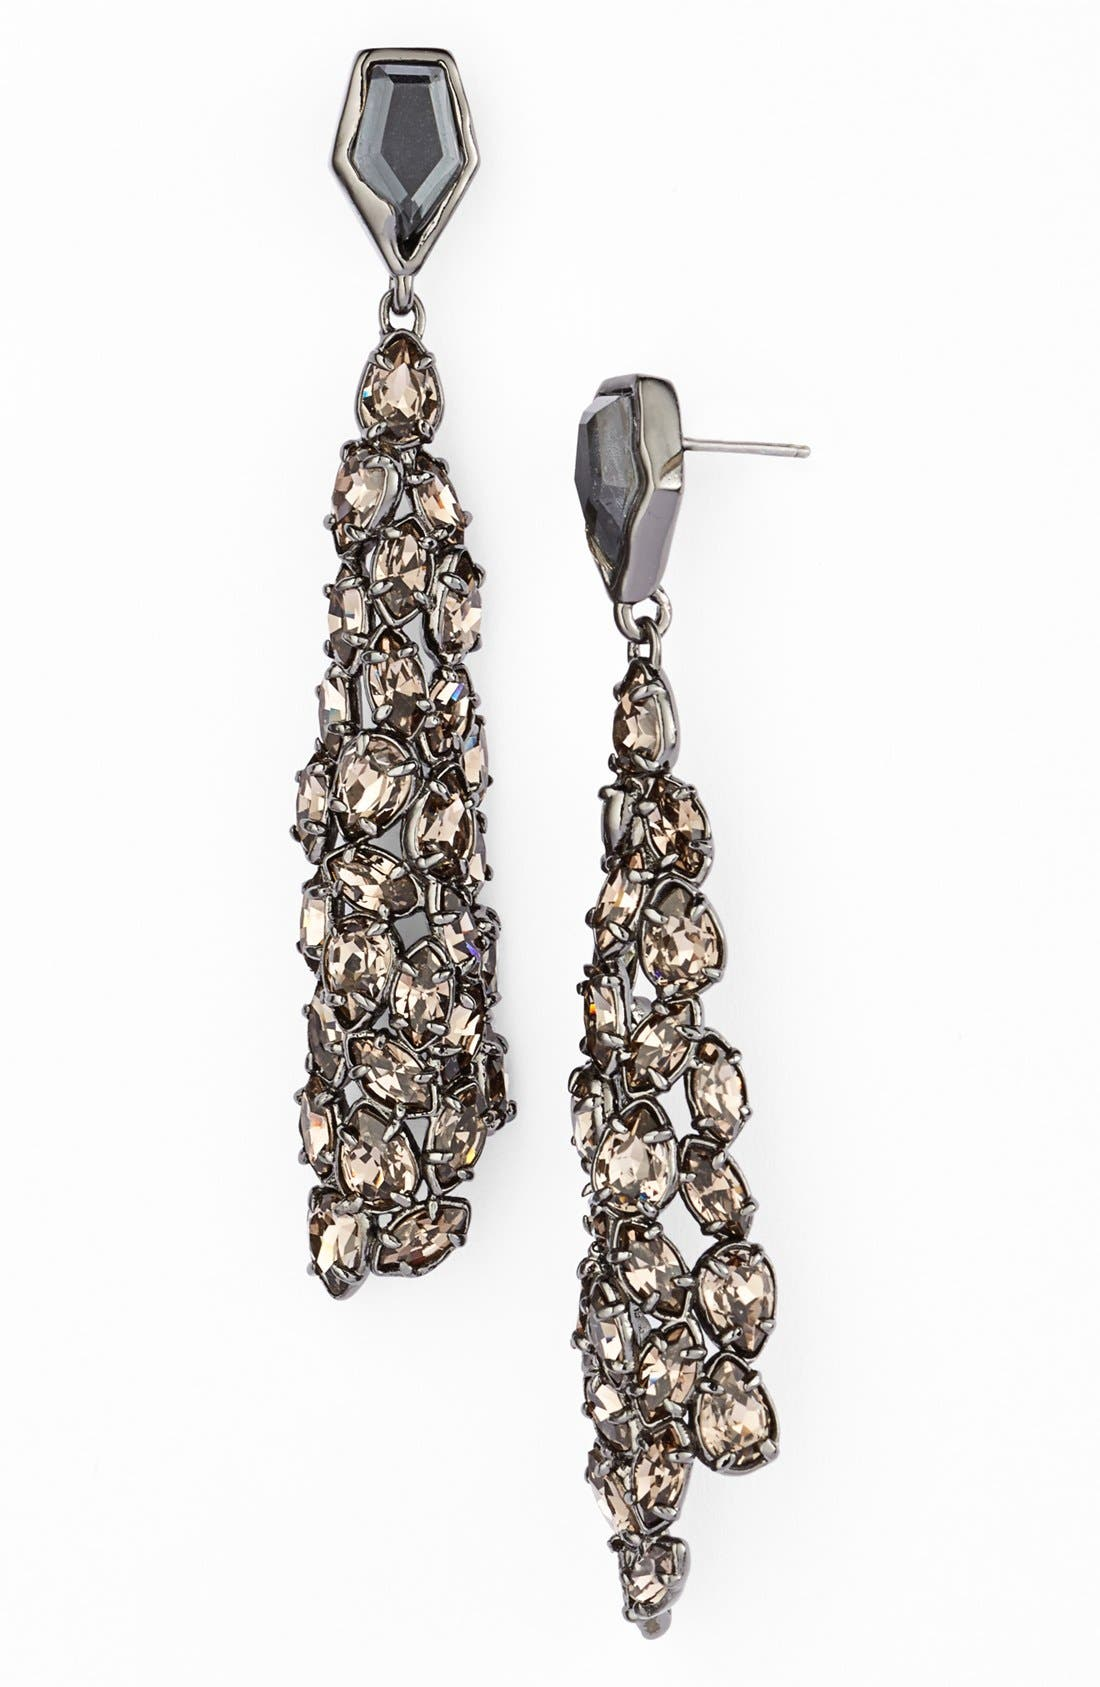 Main Image - Alexis Bittar 'Miss Havisham' Linear Earrings